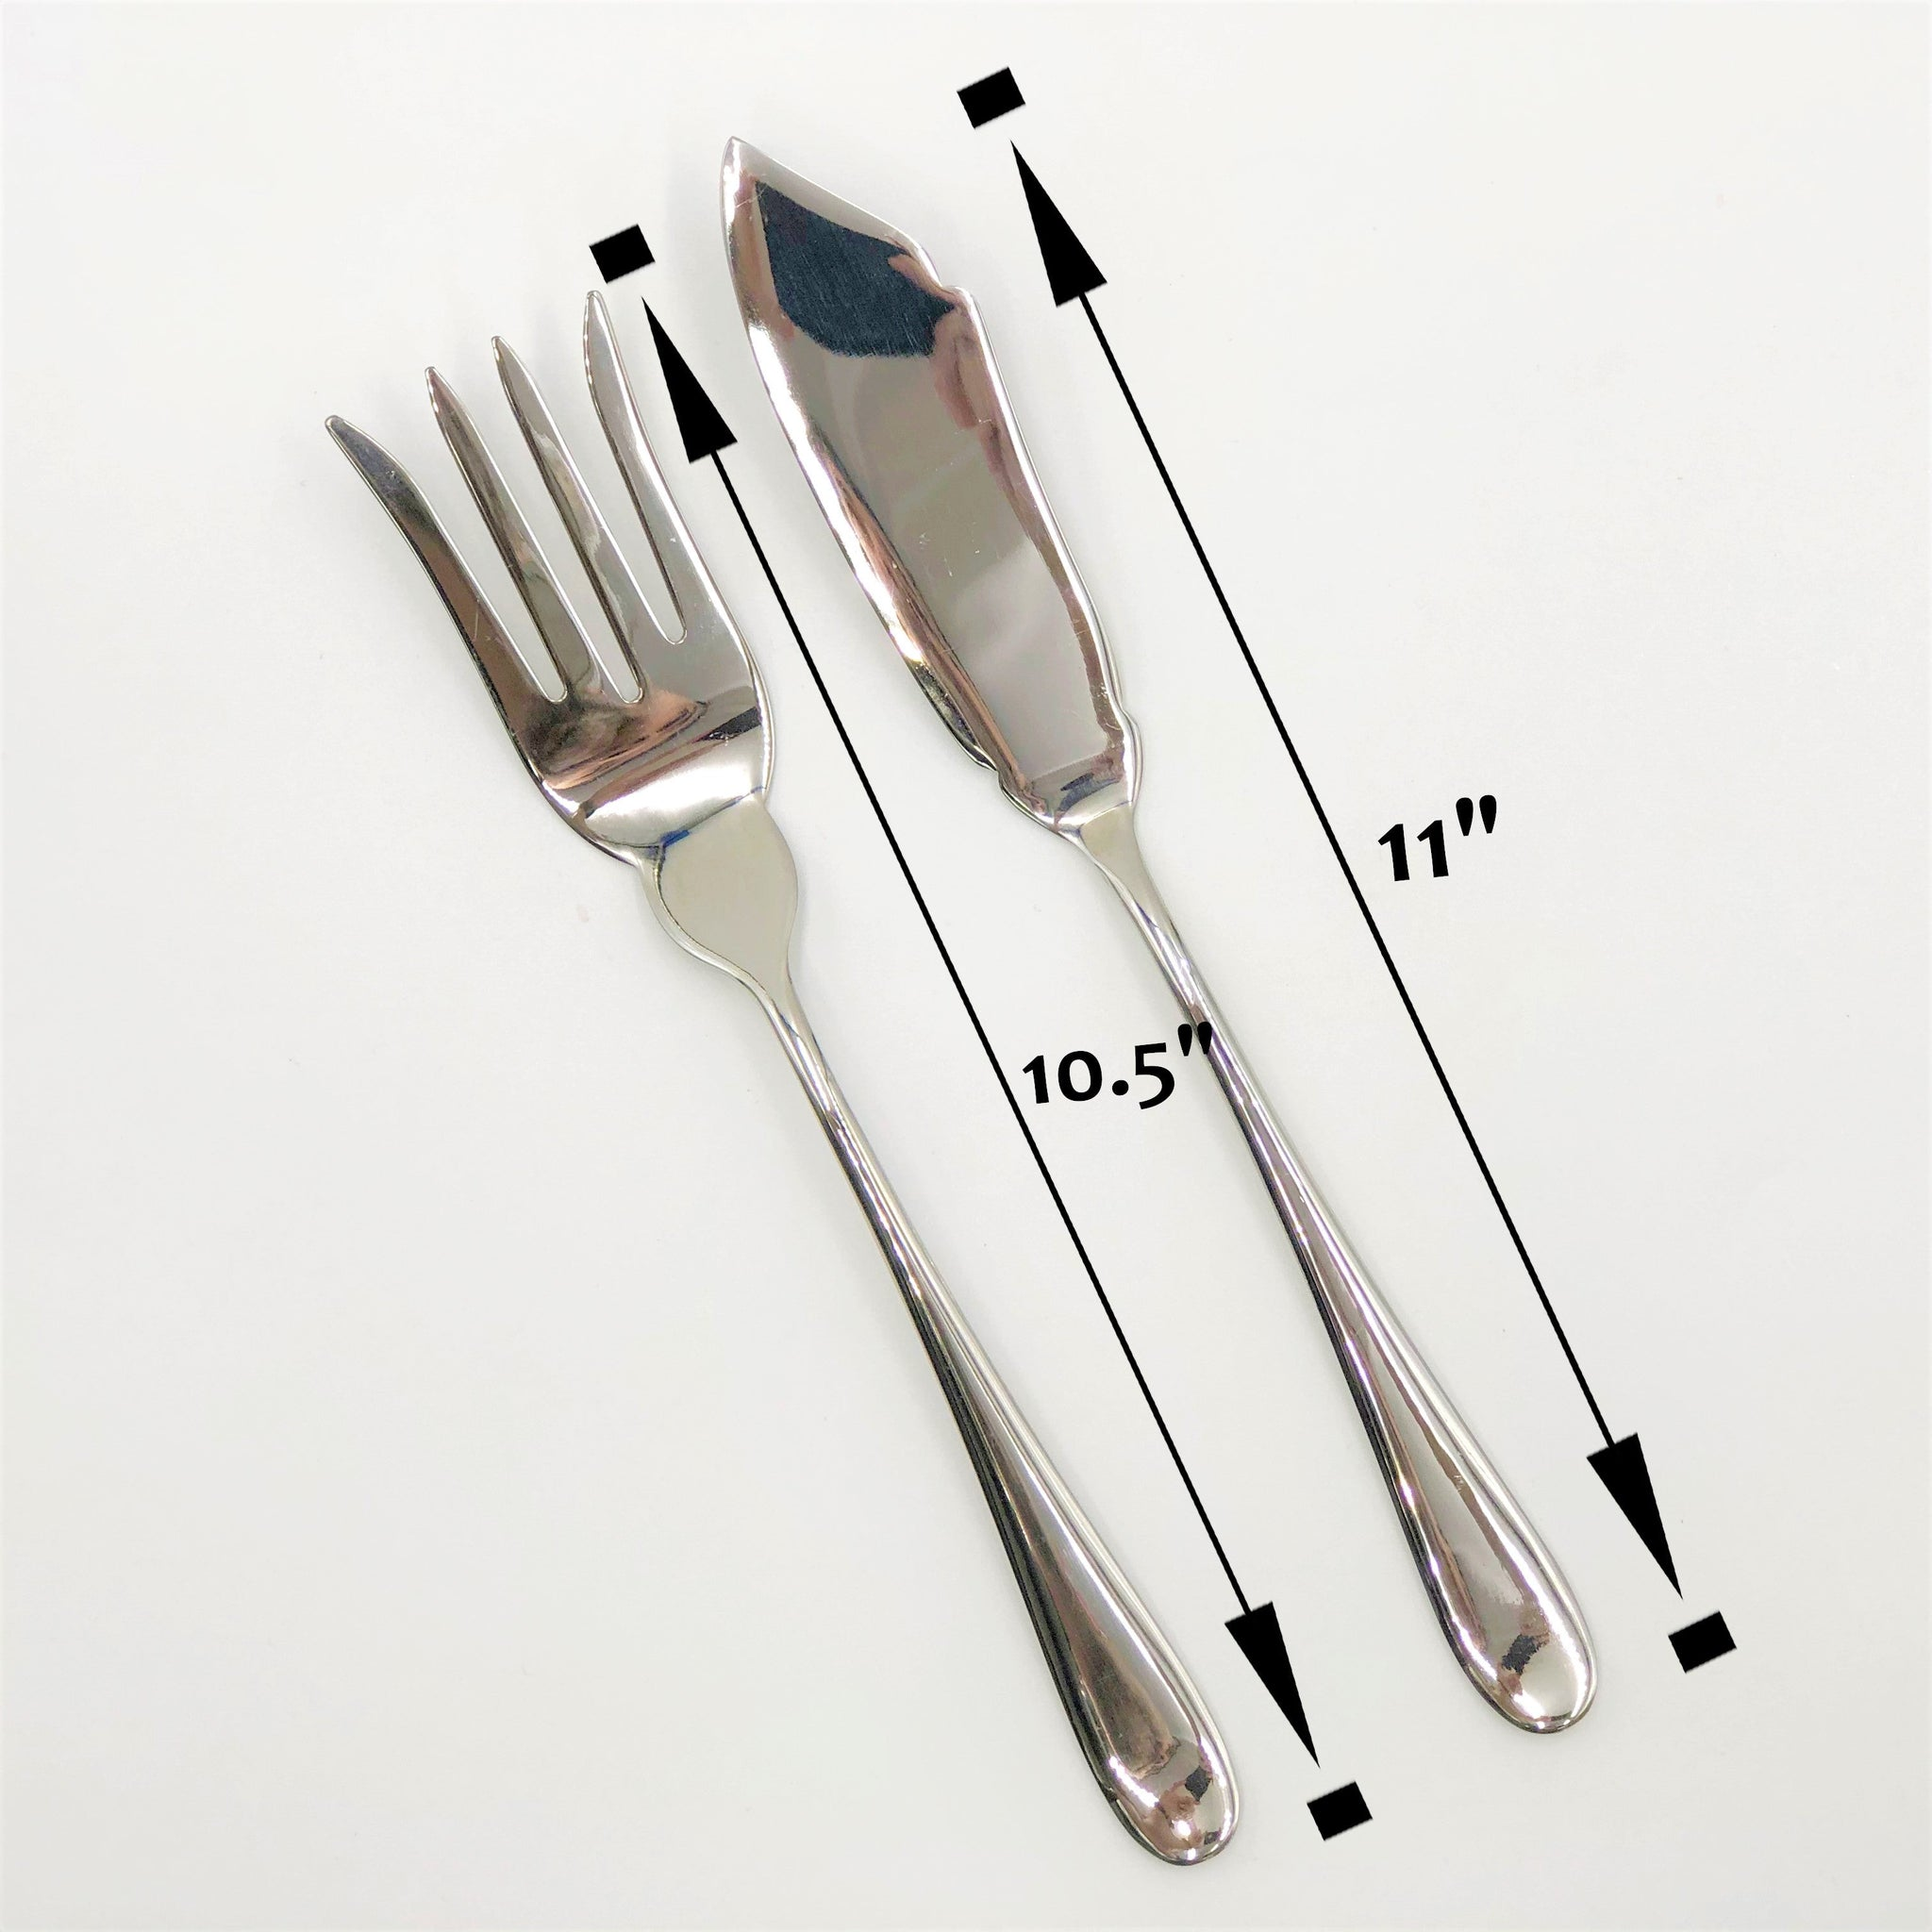 Stainless Steel Fish Serving Knife And Serving Fork Two (2) Piece Serving Set Great For Entertaining WL-555053